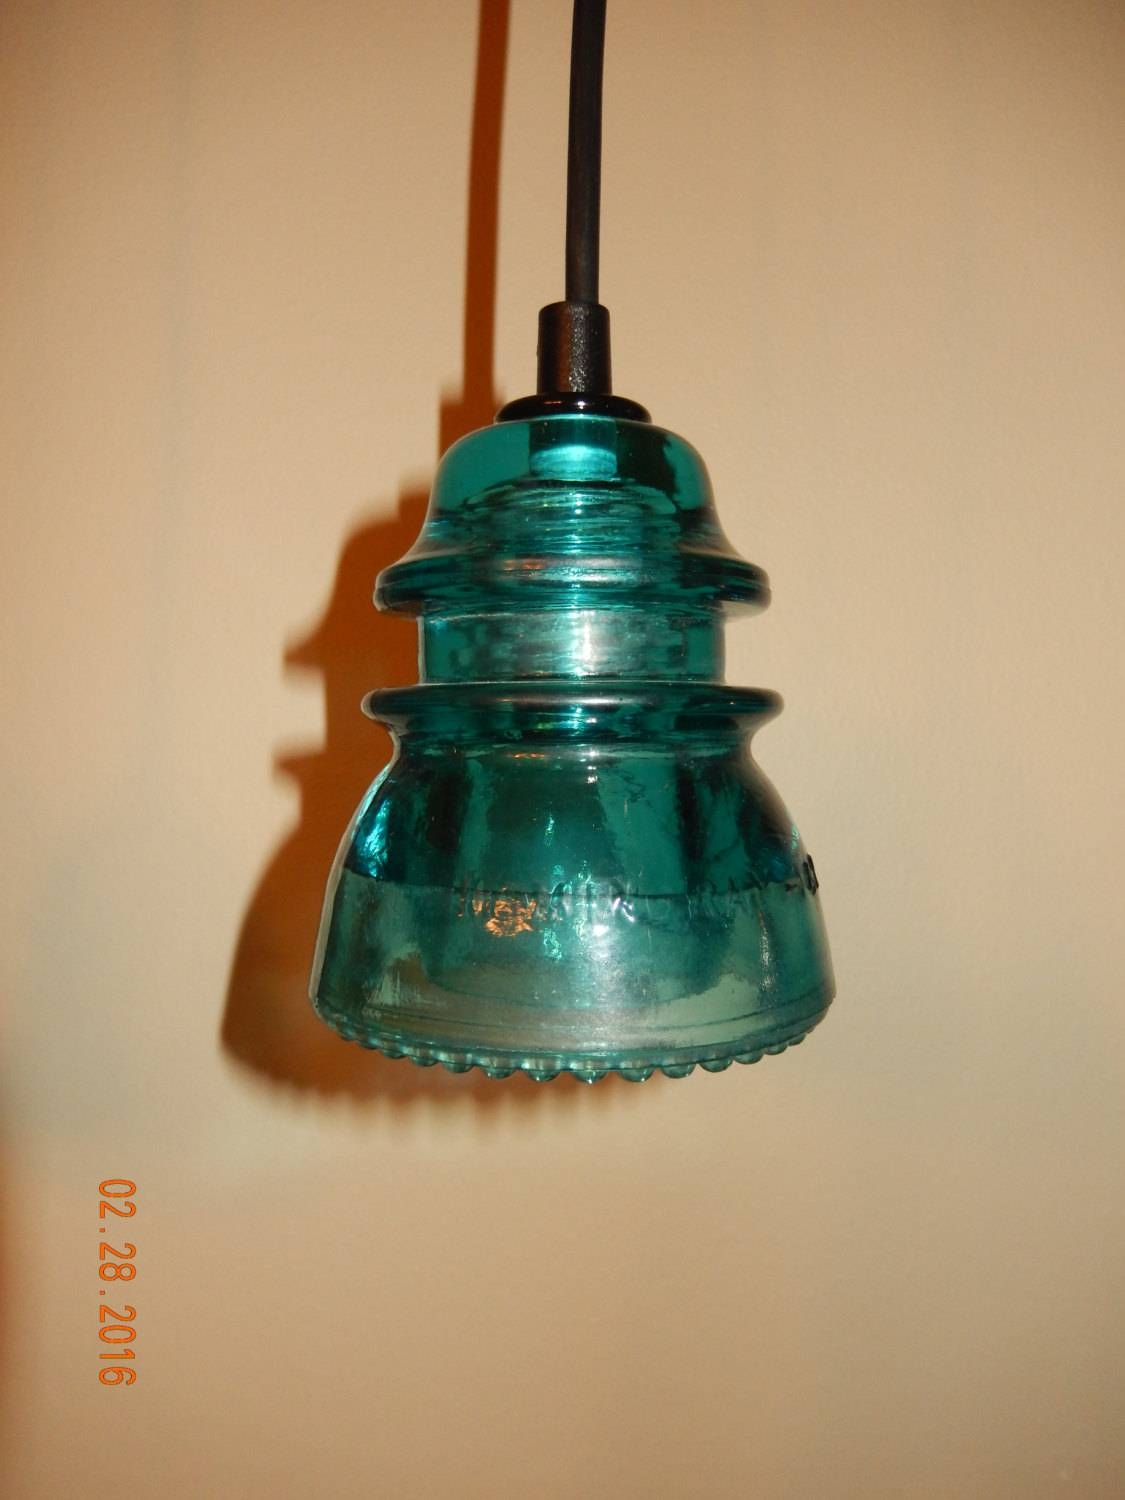 Vintage Glass Insulator Pendant Lights in Insulator Pendant Lights (Image 15 of 15)